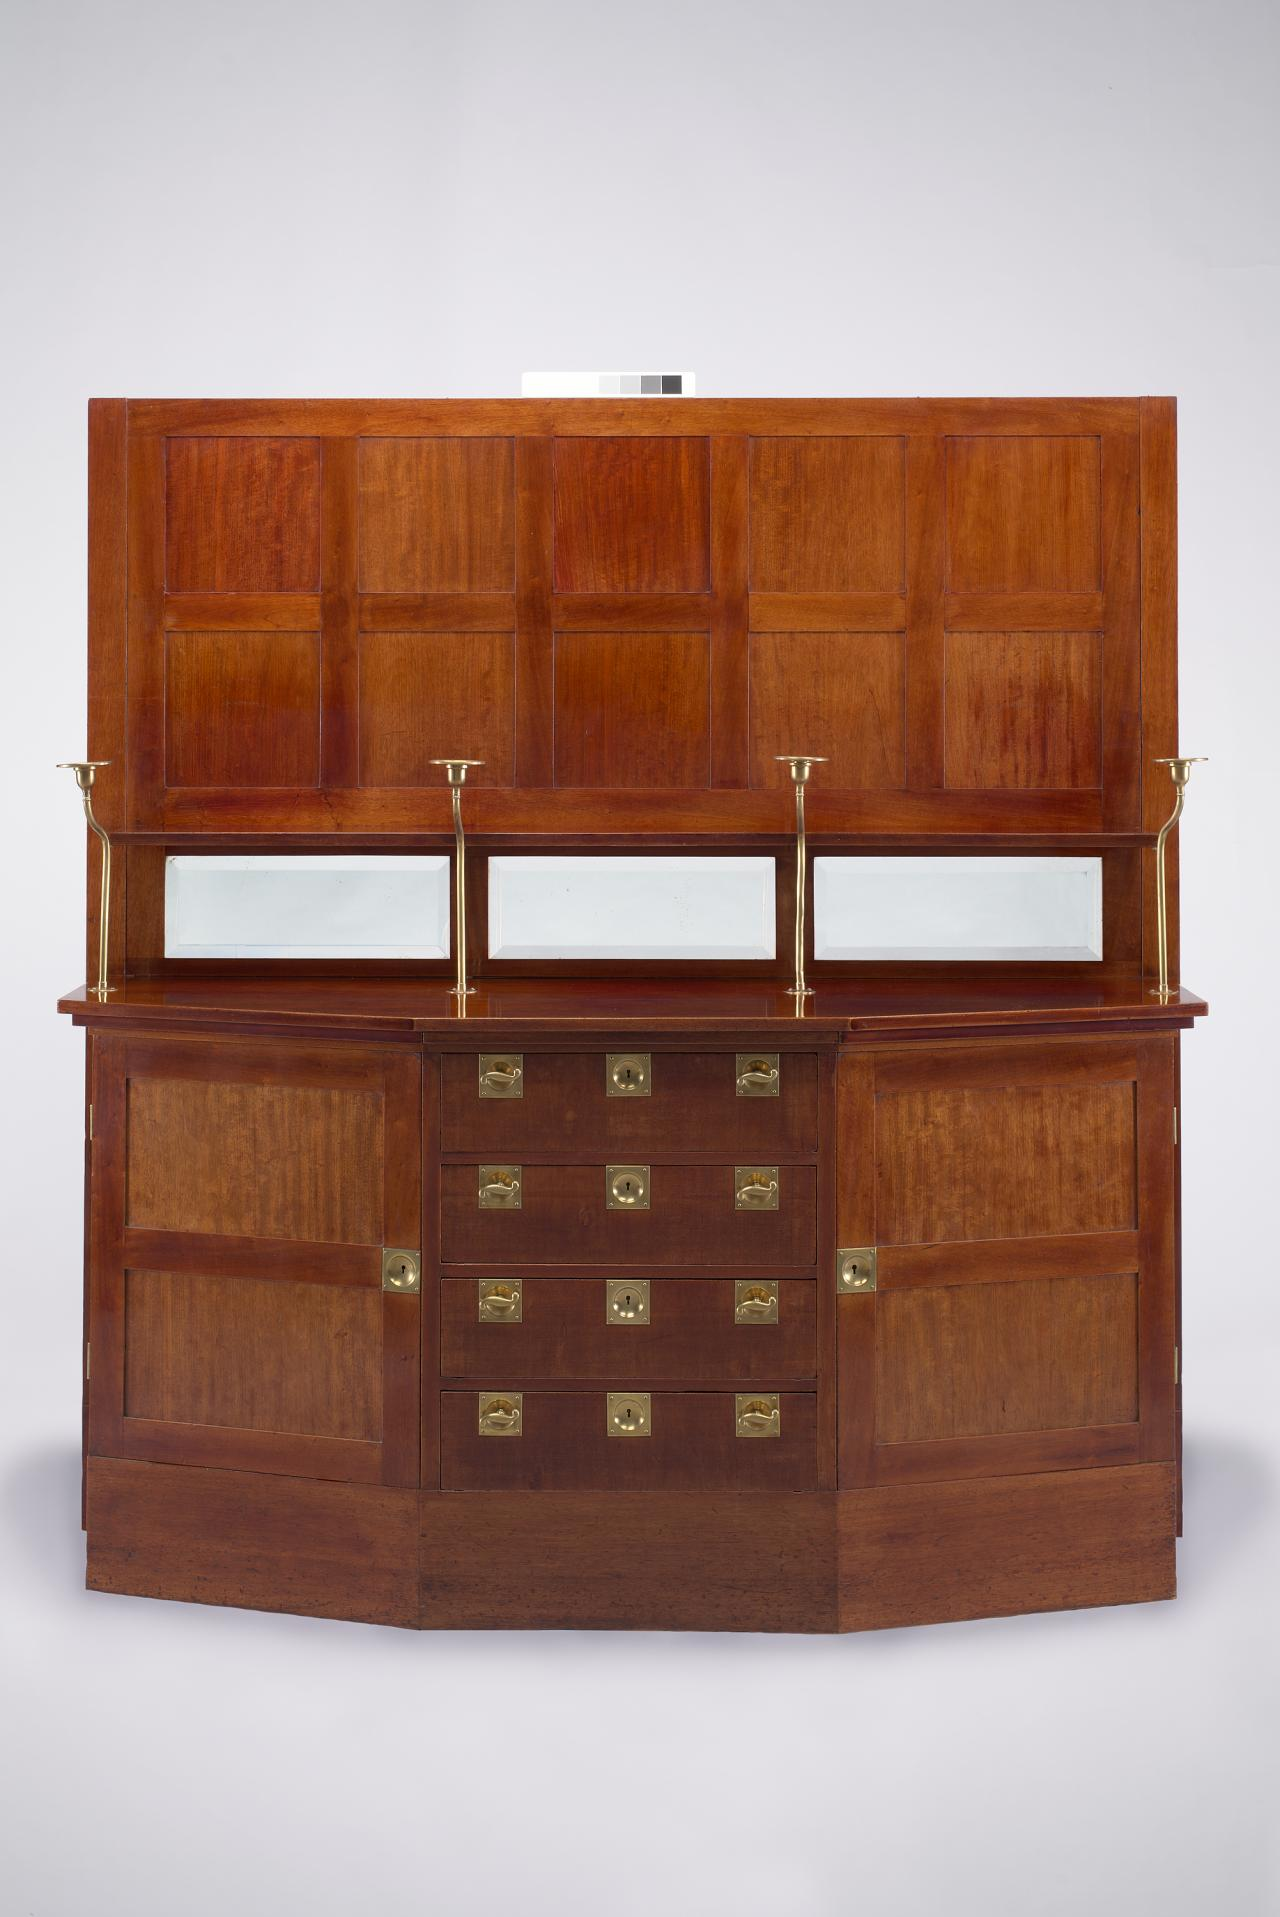 Sideboard From The Langer Apartment 1903 Adolf Loos